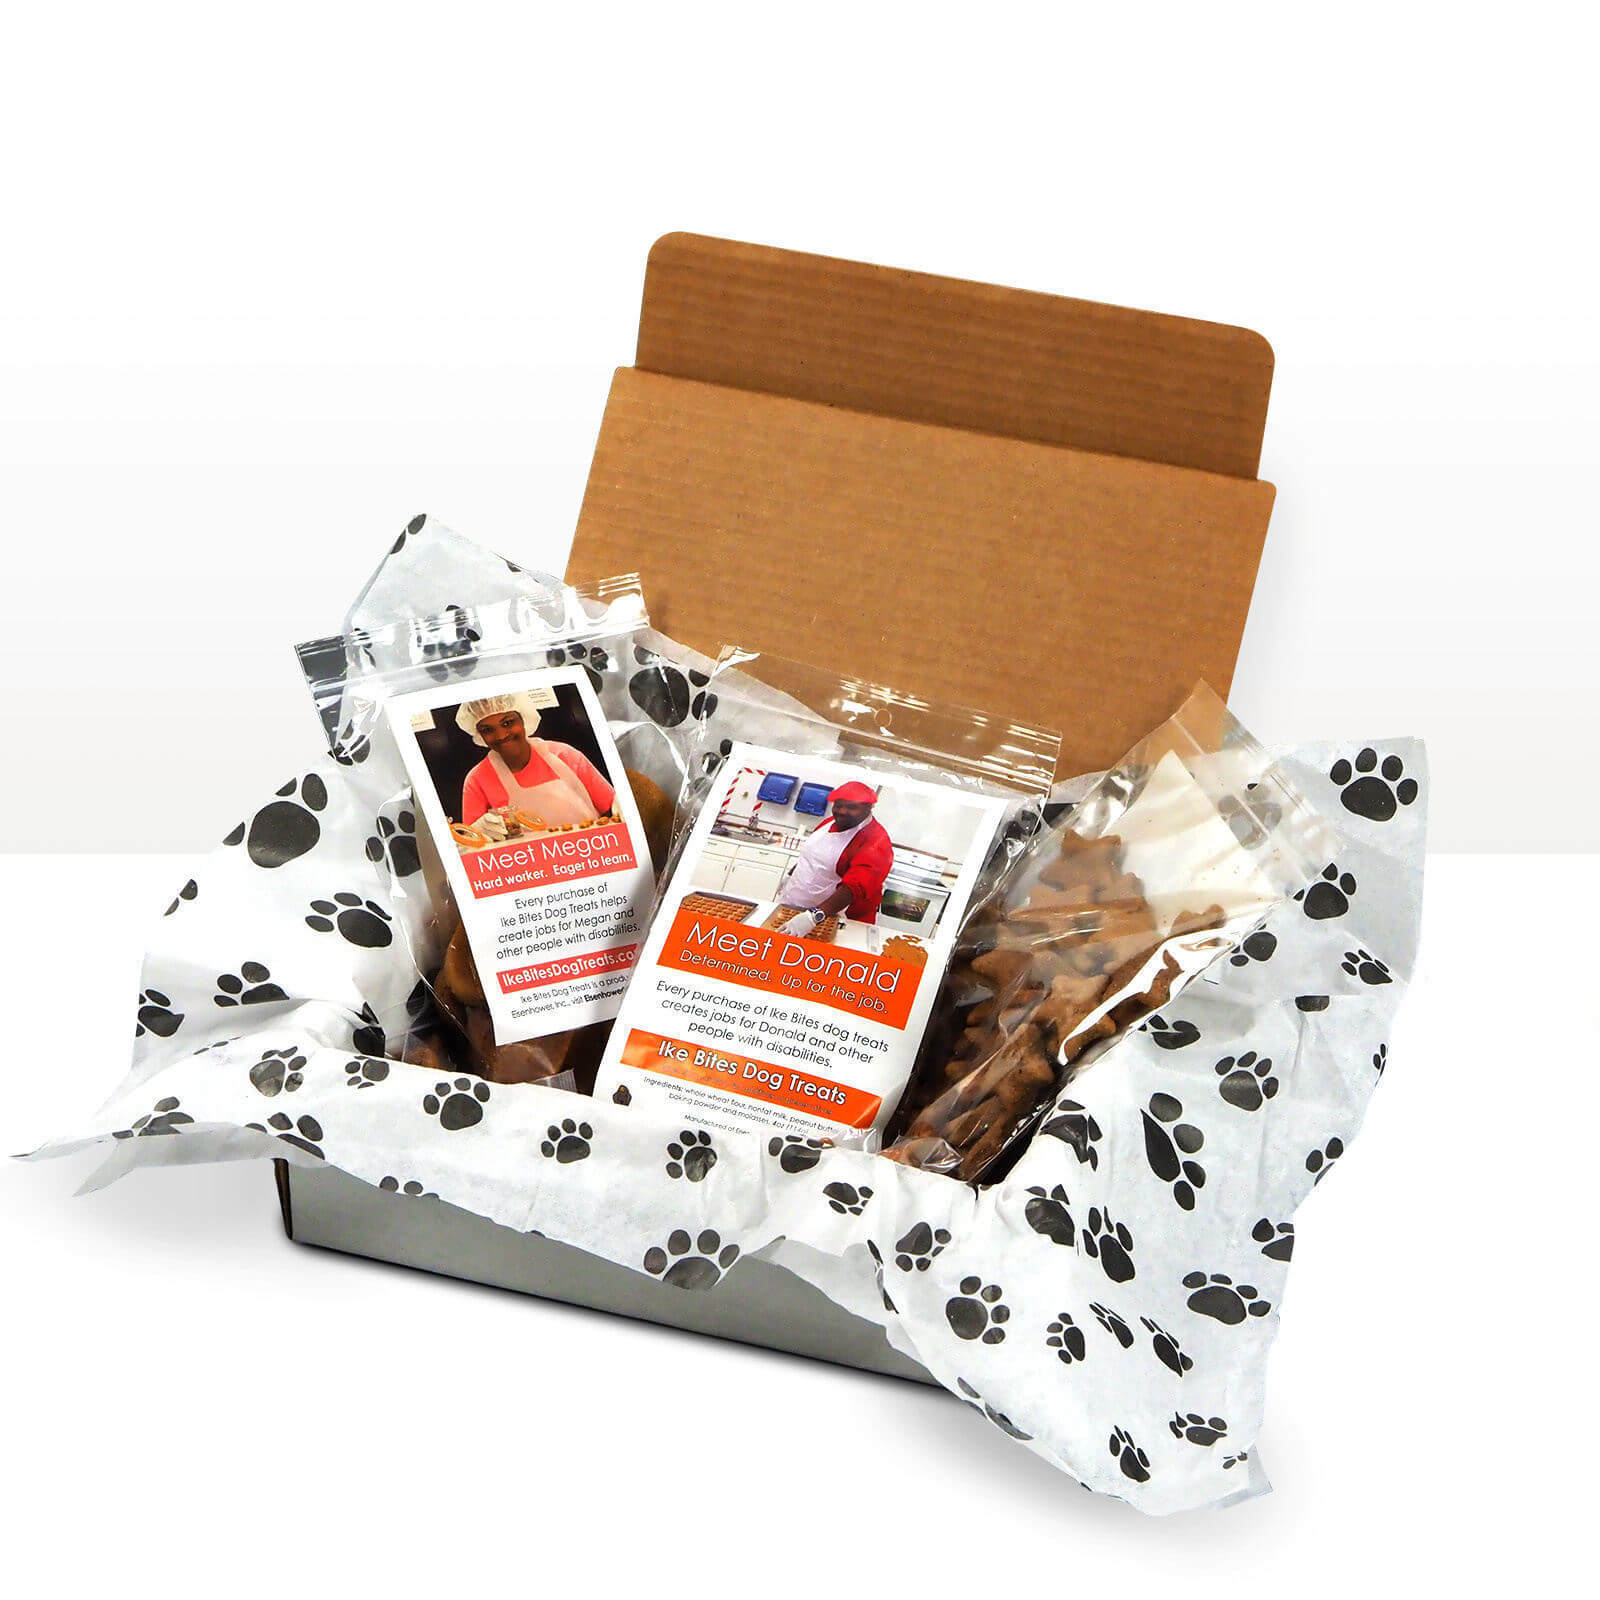 Dog Treat Packaging photographed for Ike's Bites, a Non-profit in Wisconsin